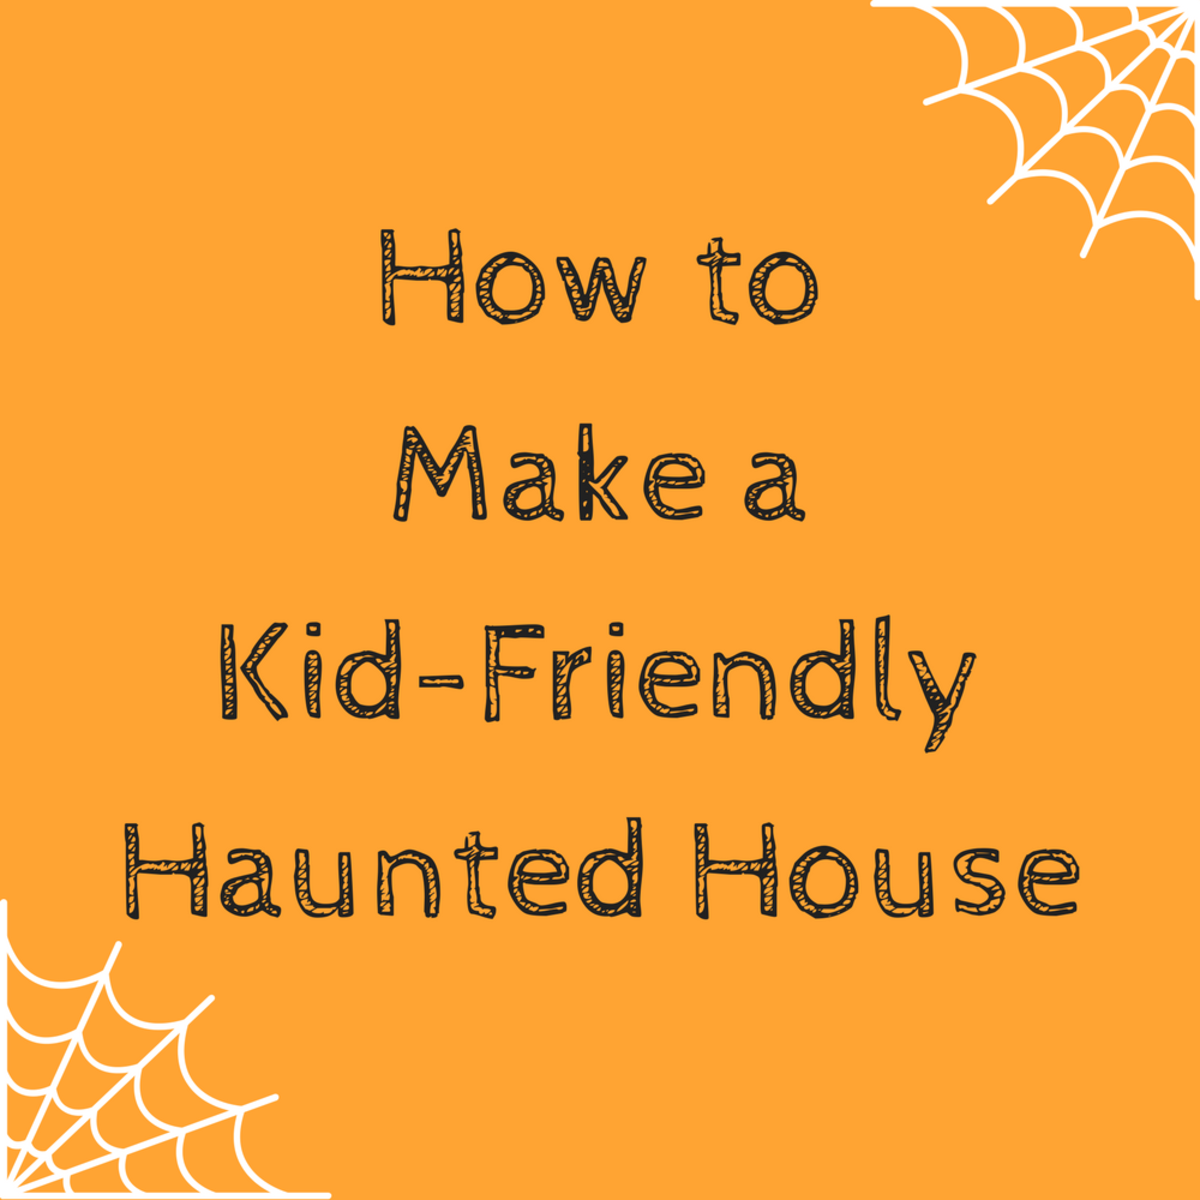 How to Make a Kid-Friendly Haunted House in 7 Easy Steps